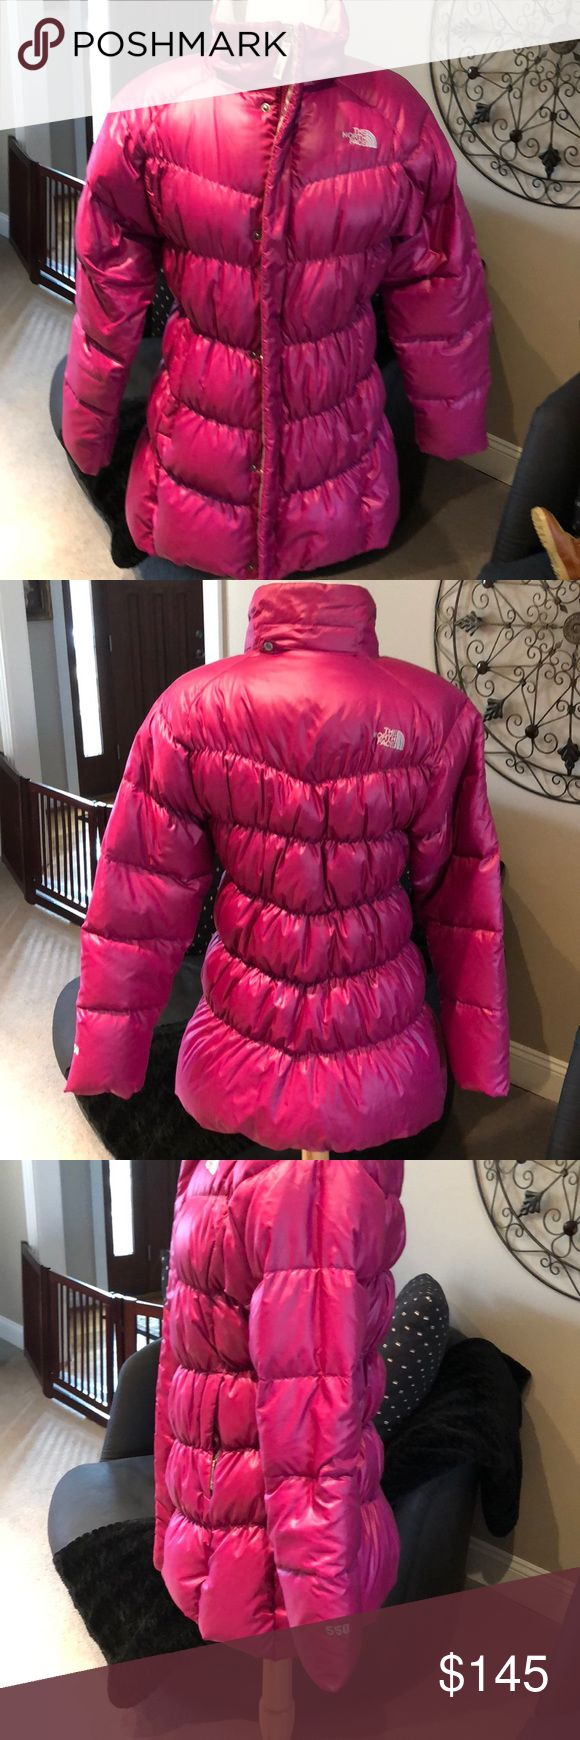 NORTH FACE MAGENTA DOWN JACKET 💕BRAND NEW NO TAGS/NO HOOD💕 AUTHENTIC NORTH FACE MAGENTA DOWN (VERY WARM) PUFFER JACKET. PURCHASED WITHOUT THE REMOVABLE HAT (So this jacket will NOT have the hat) and never have worn it.  It is a girls XL/TG (18) and I purchased for myself (adult small).  Disclosing above because I like ALL INFORMATION TO BE DISCLOSED. Please ask if you have further questions.  🚫NO TRADES🚫. The North Face Jackets & Coats Puffers